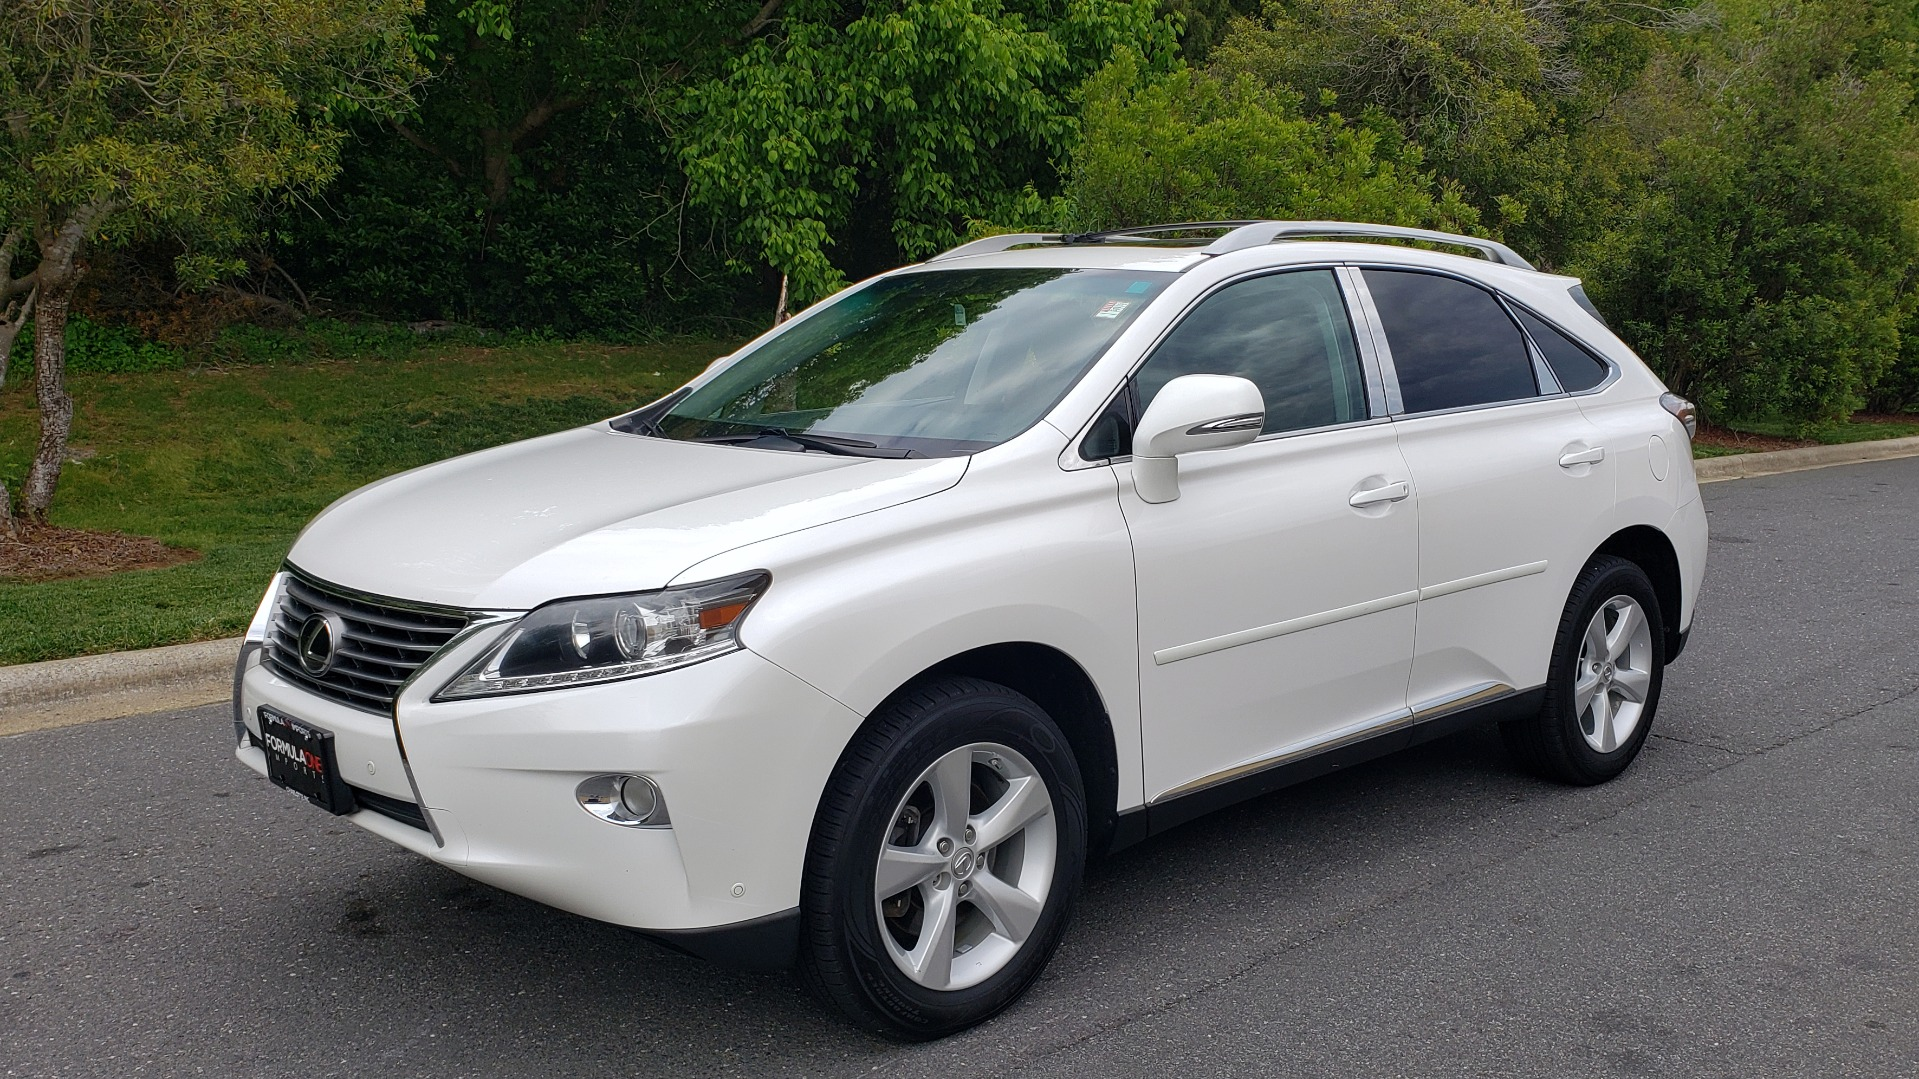 Used 2013 Lexus RX 350 PREMIUM PKG / SUNROOF / BSM / PARK ASST / REARVIEW for sale Sold at Formula Imports in Charlotte NC 28227 1